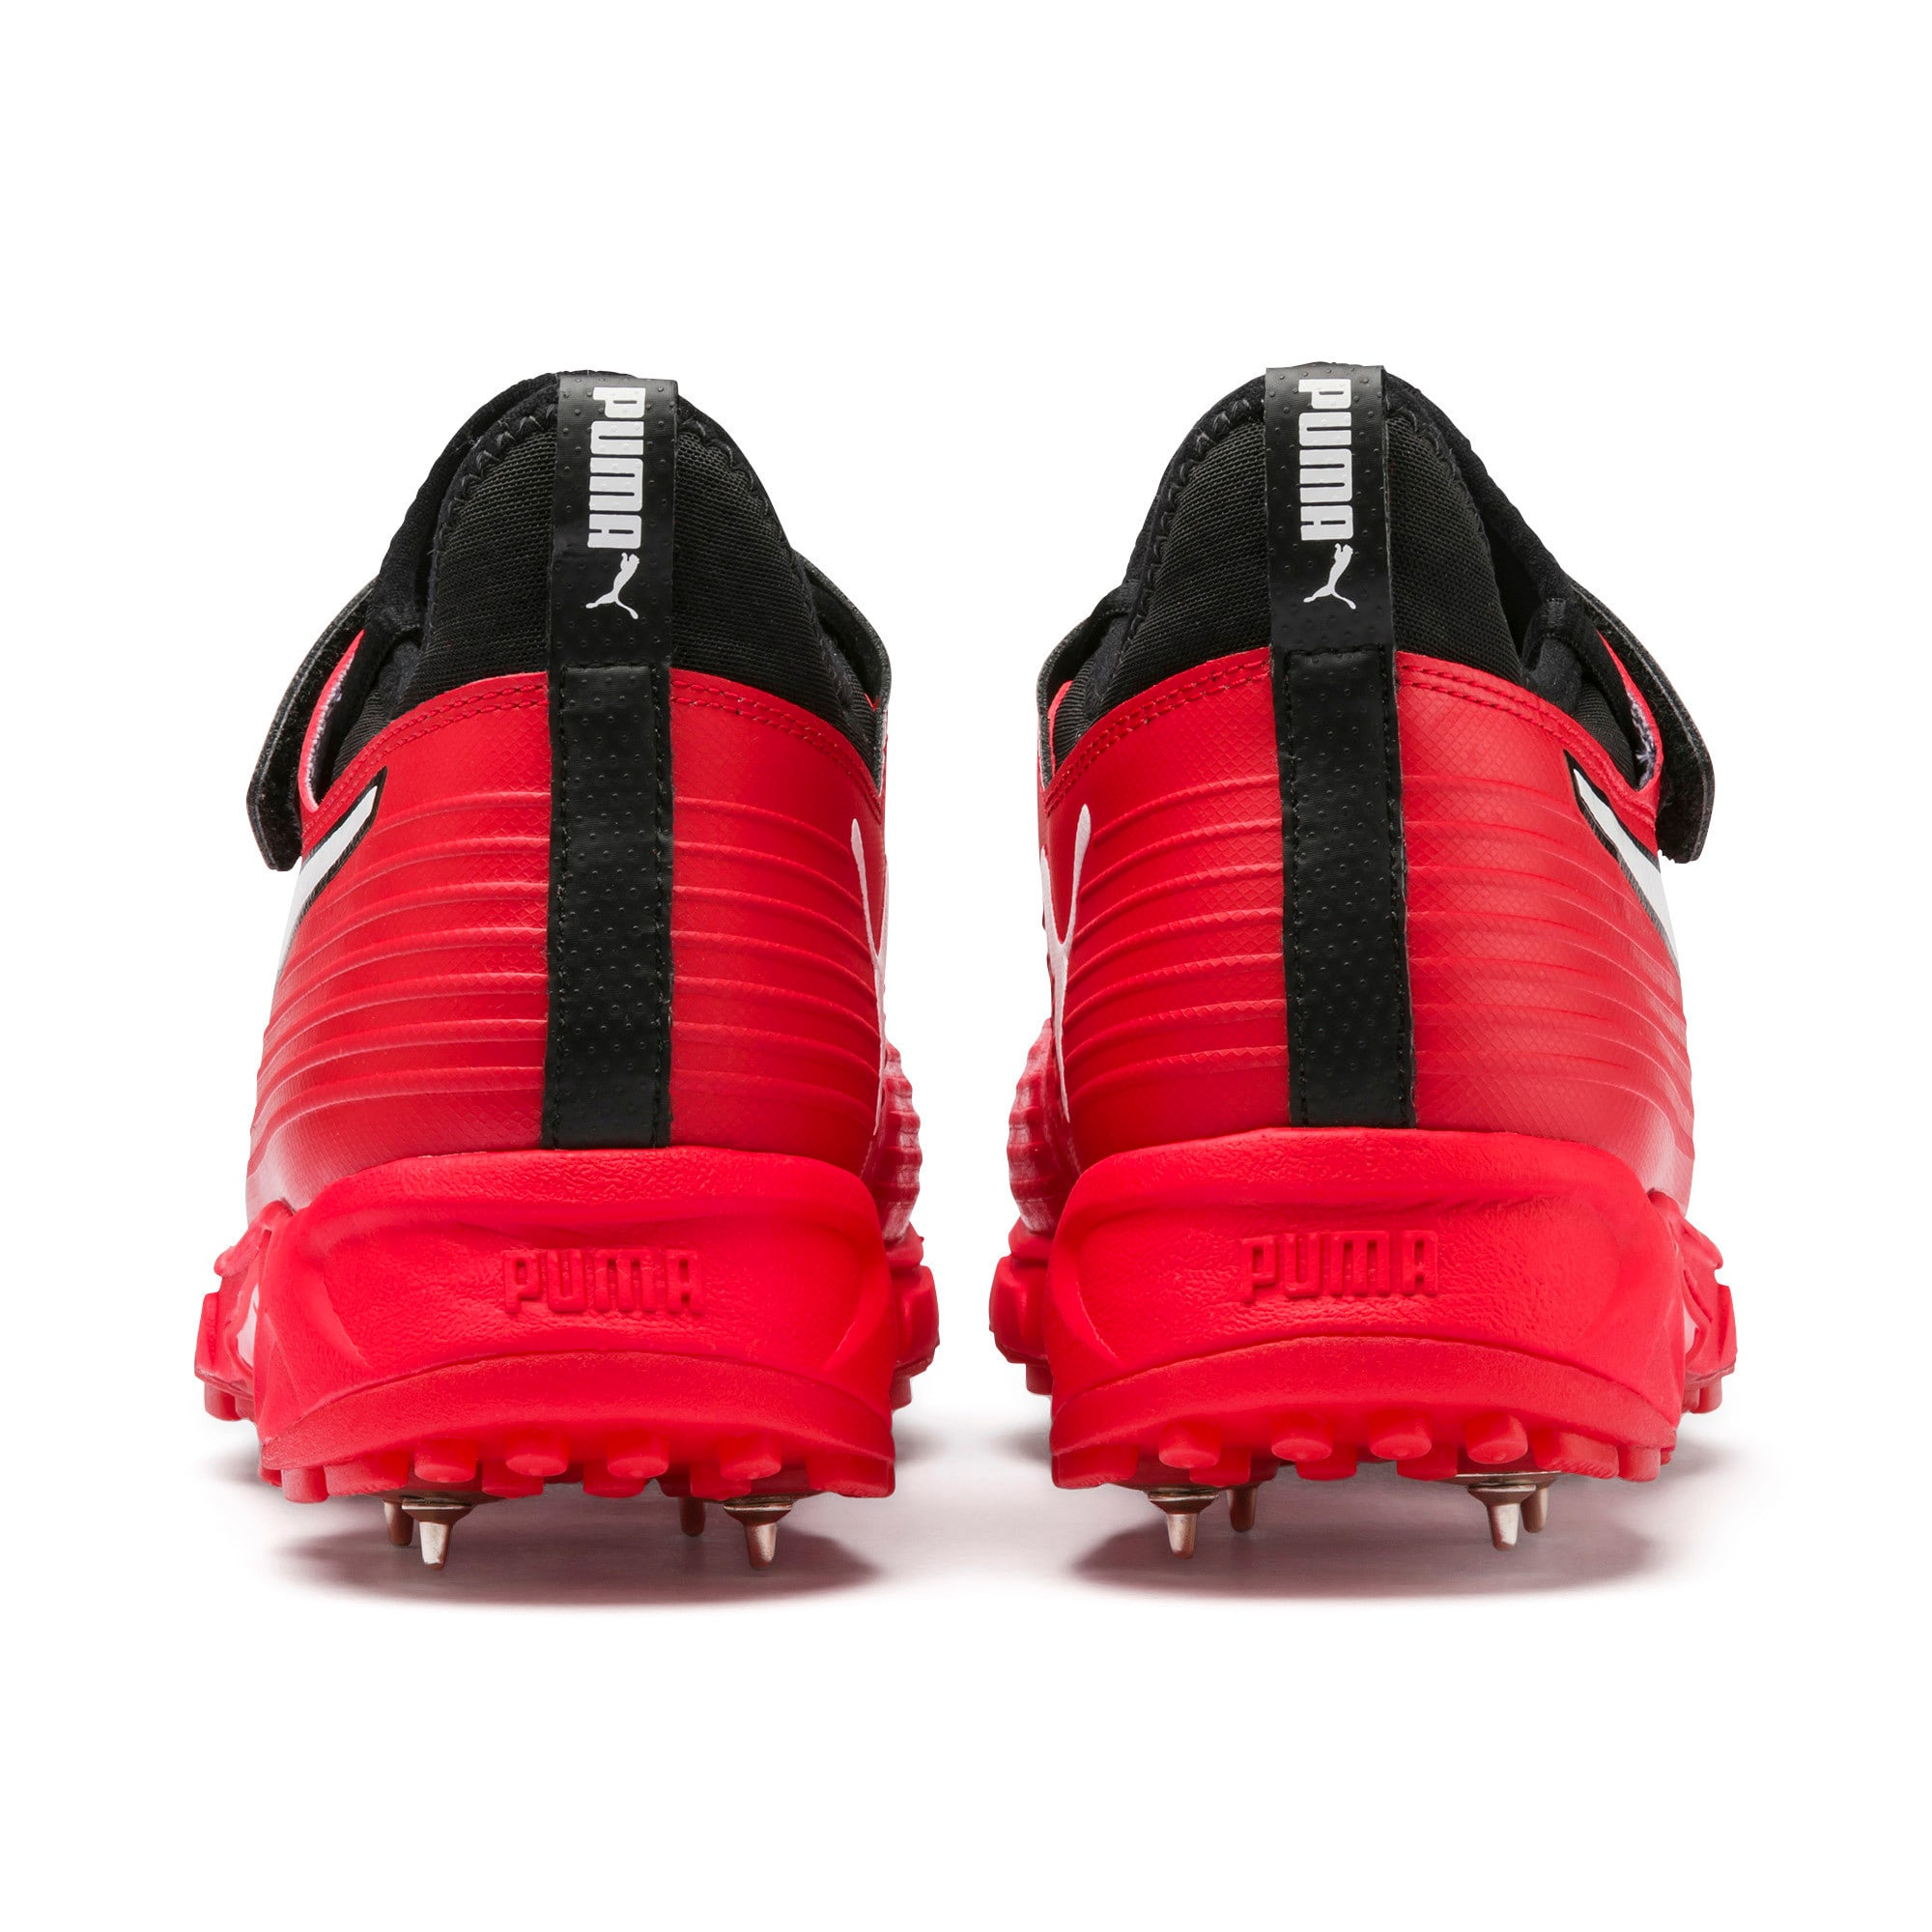 Thumbnail 3 of PUMA 19.1 Bowling Men's Cricket Shoes, High Risk Red-Black-White, medium-IND